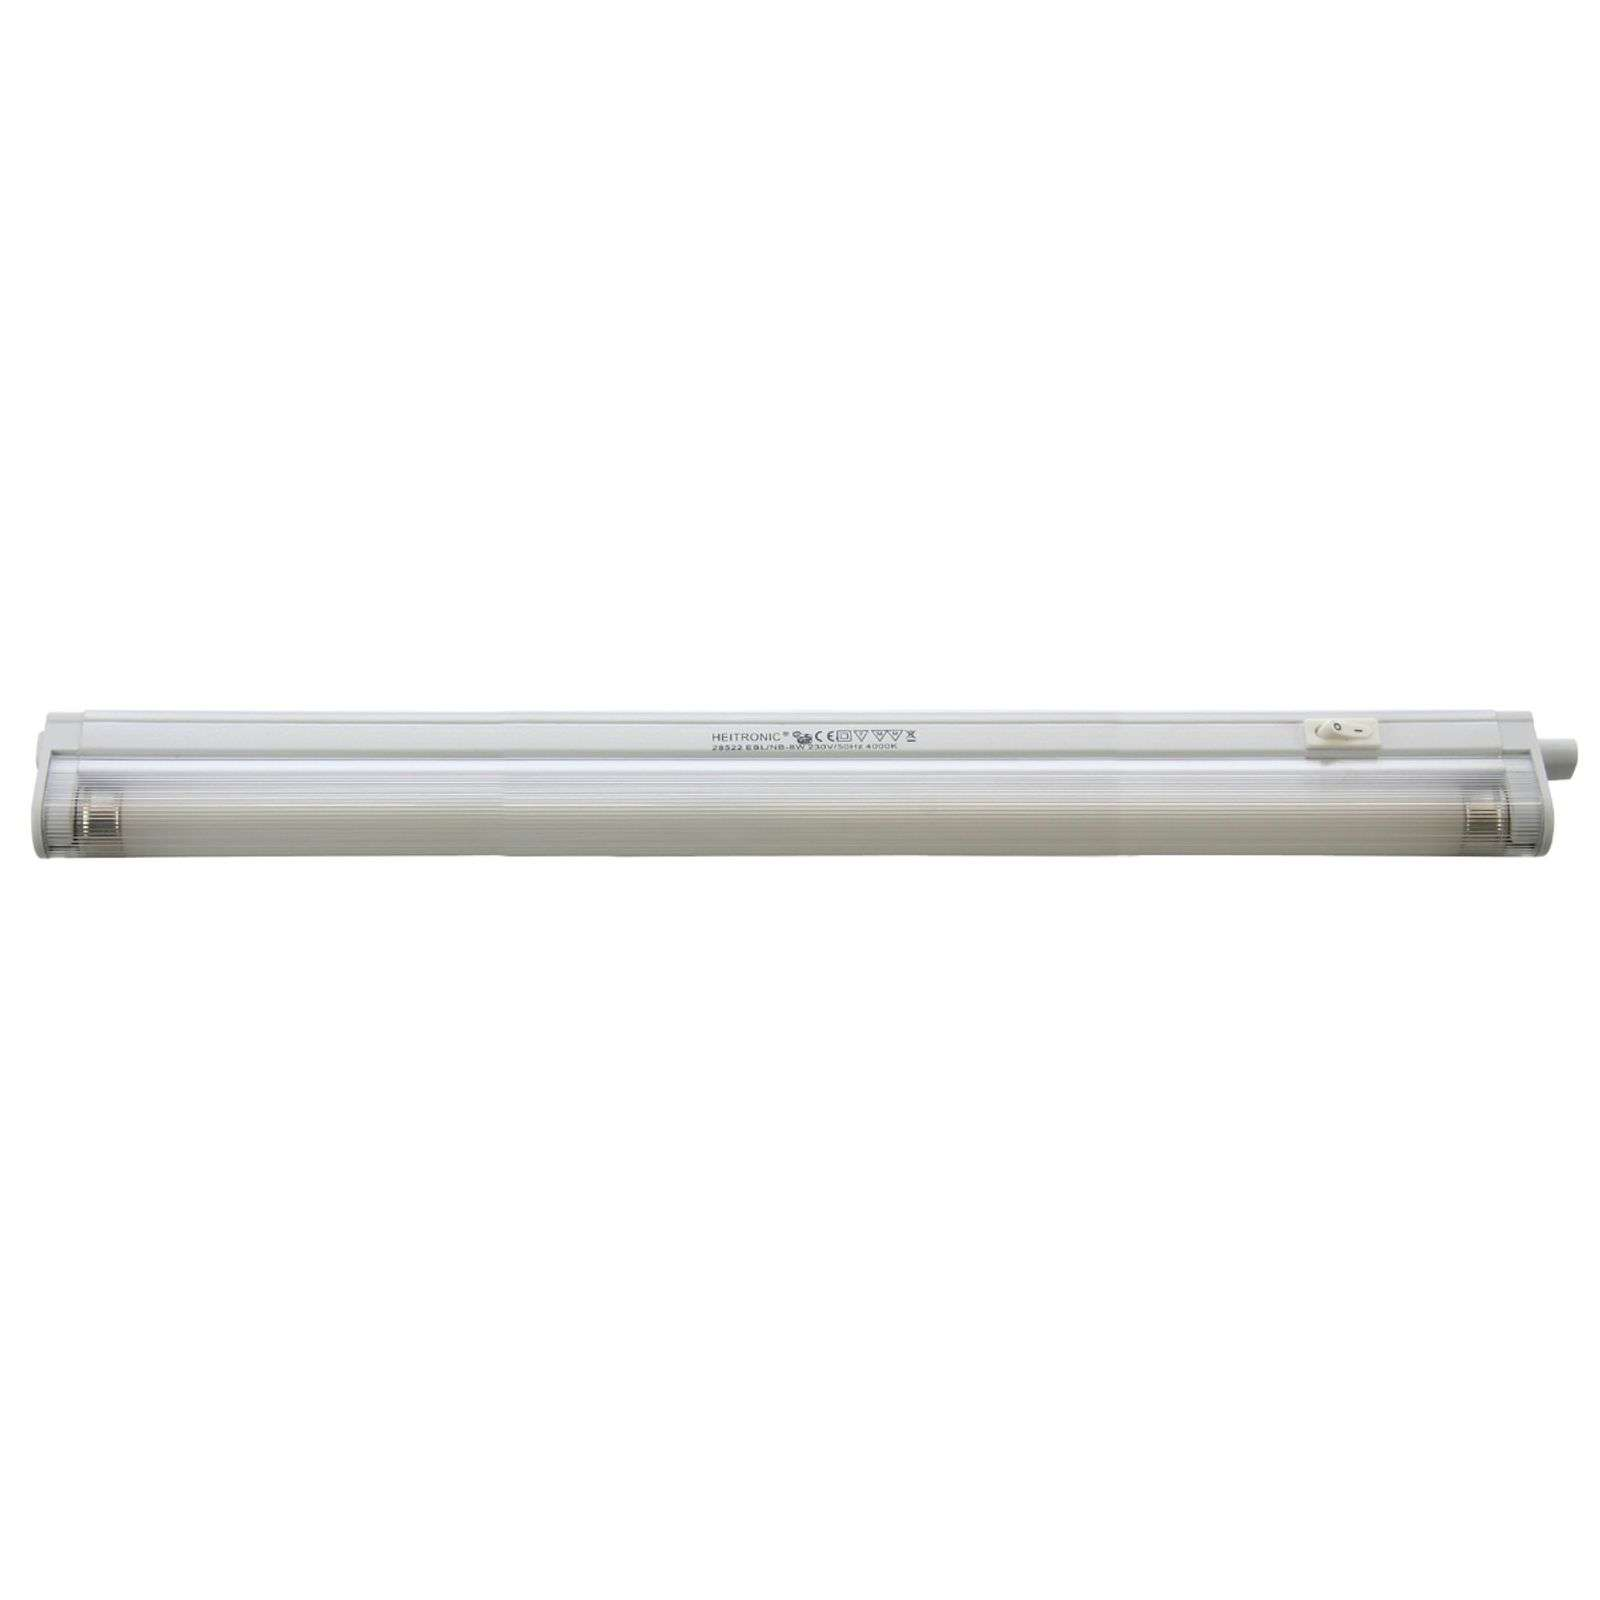 Surface/under-cabinet light and ballast 8 W CW